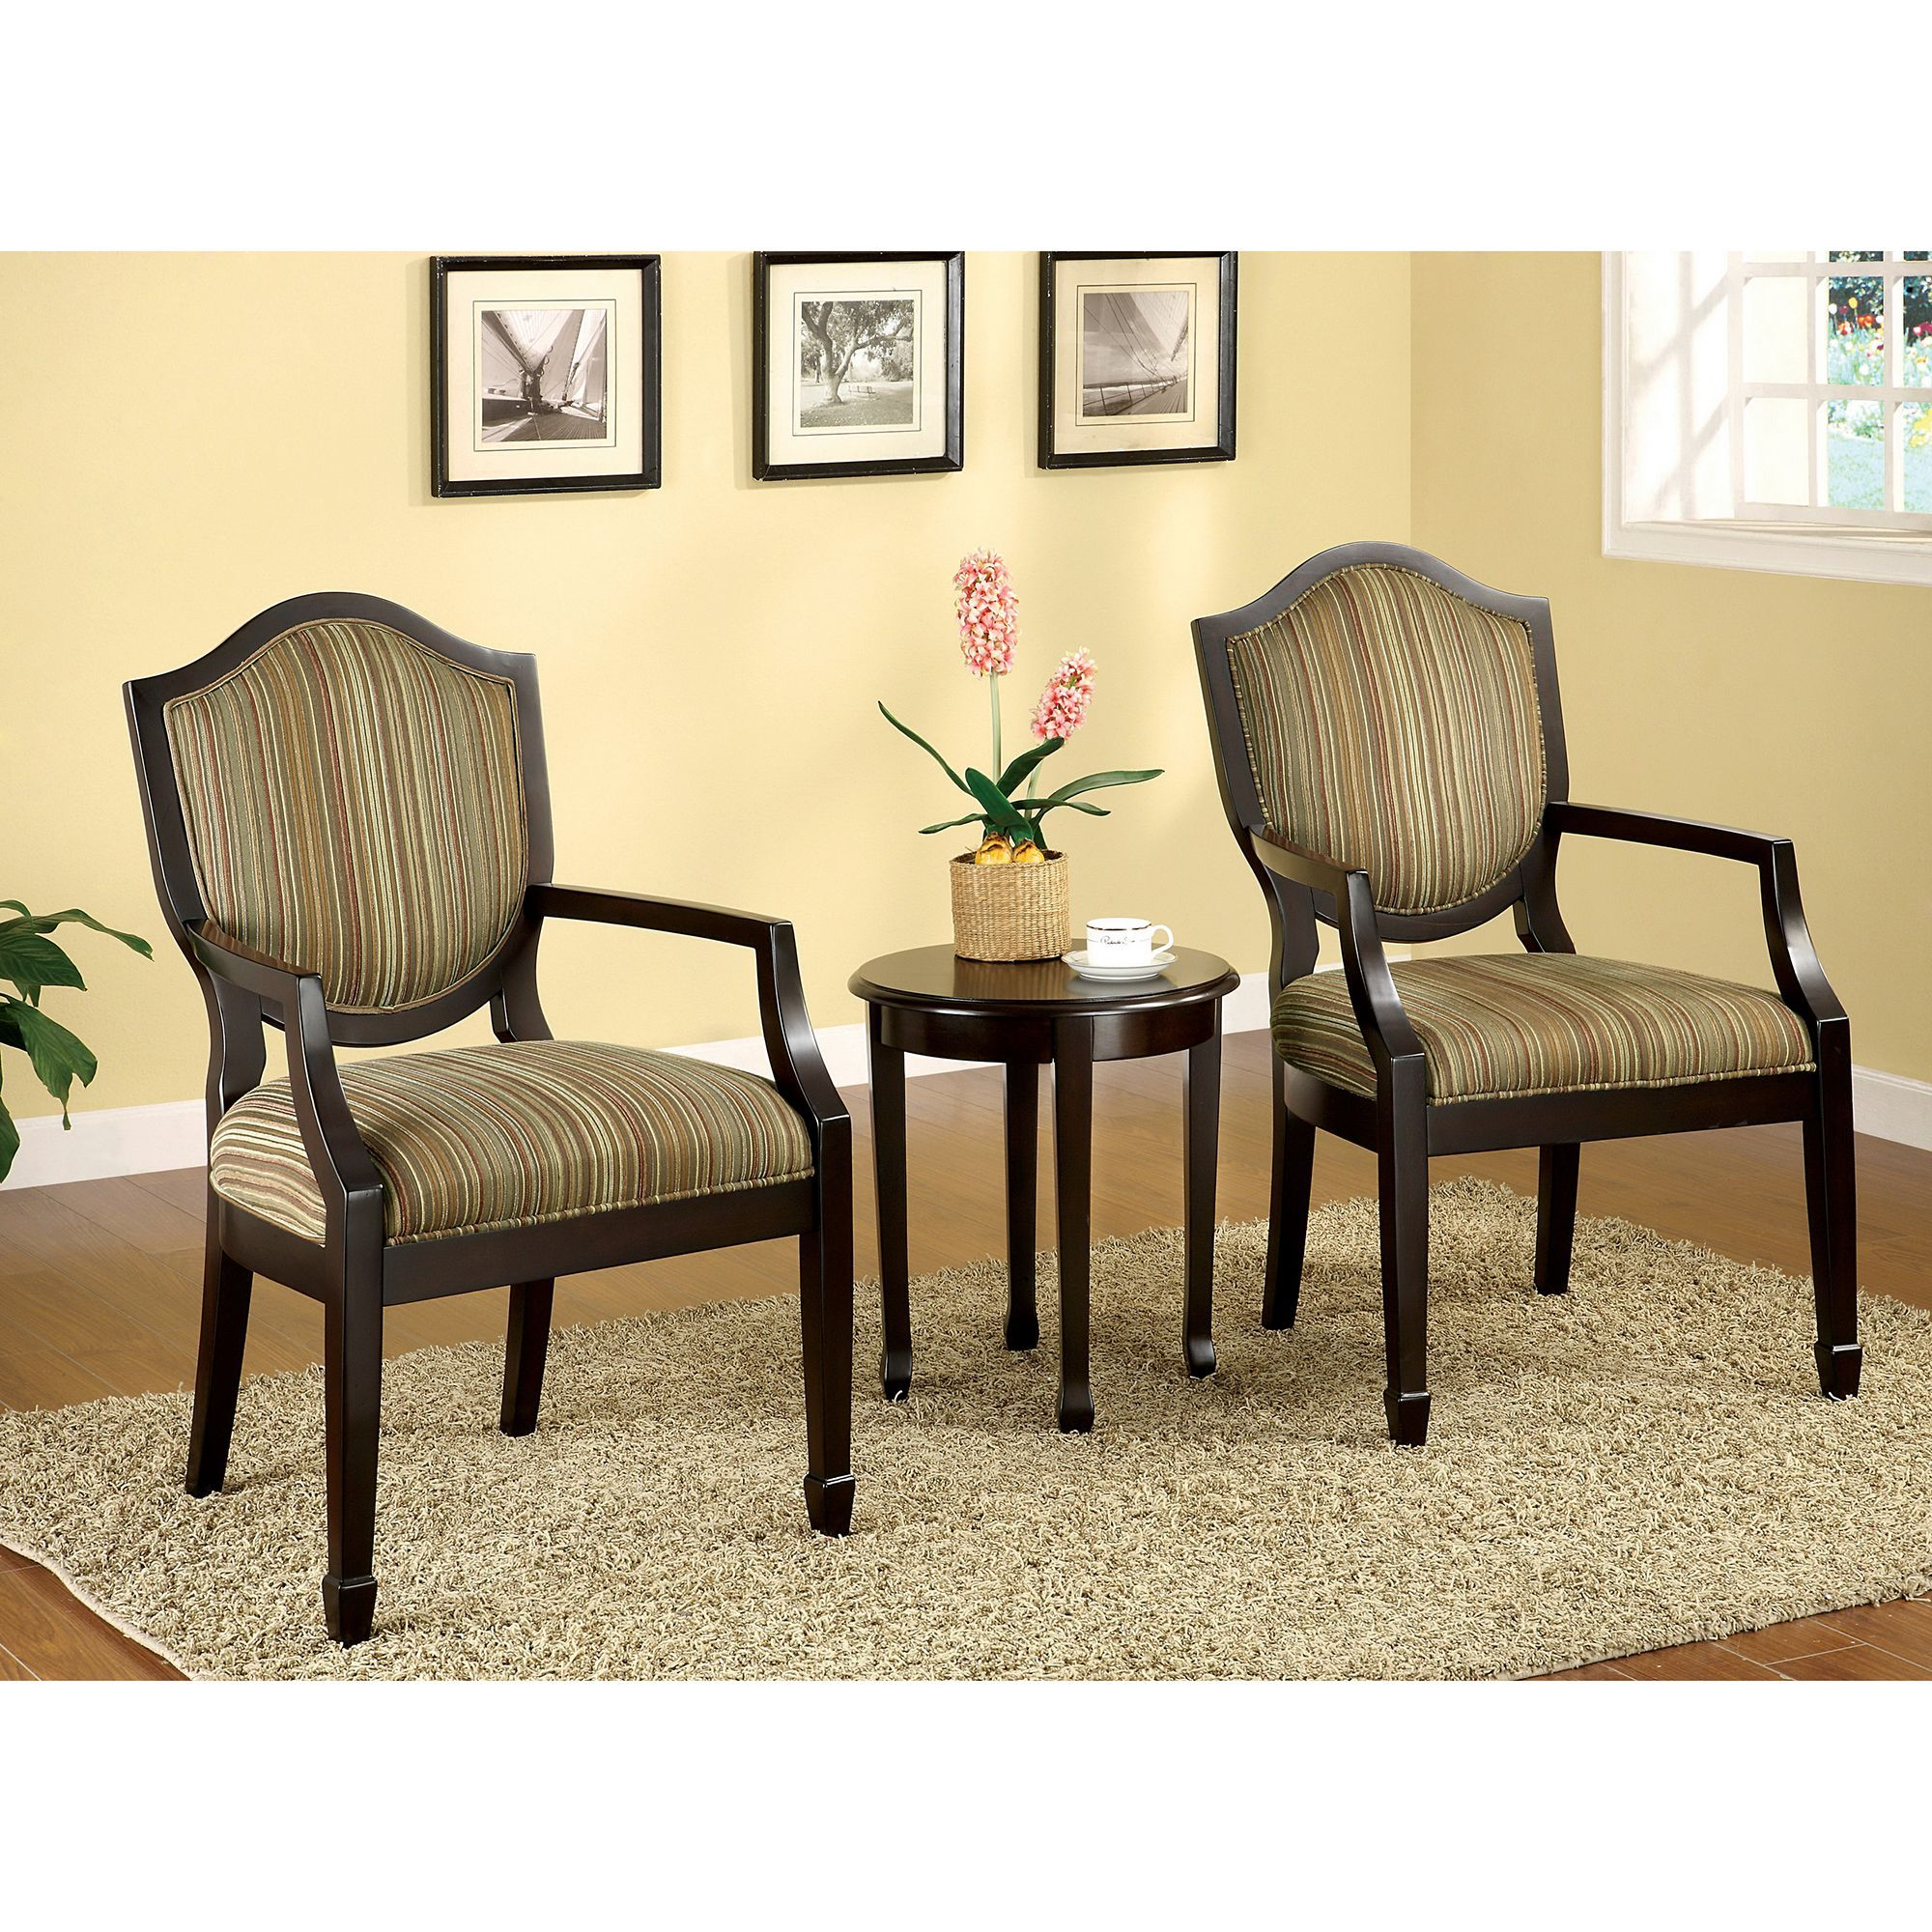 two chair table set